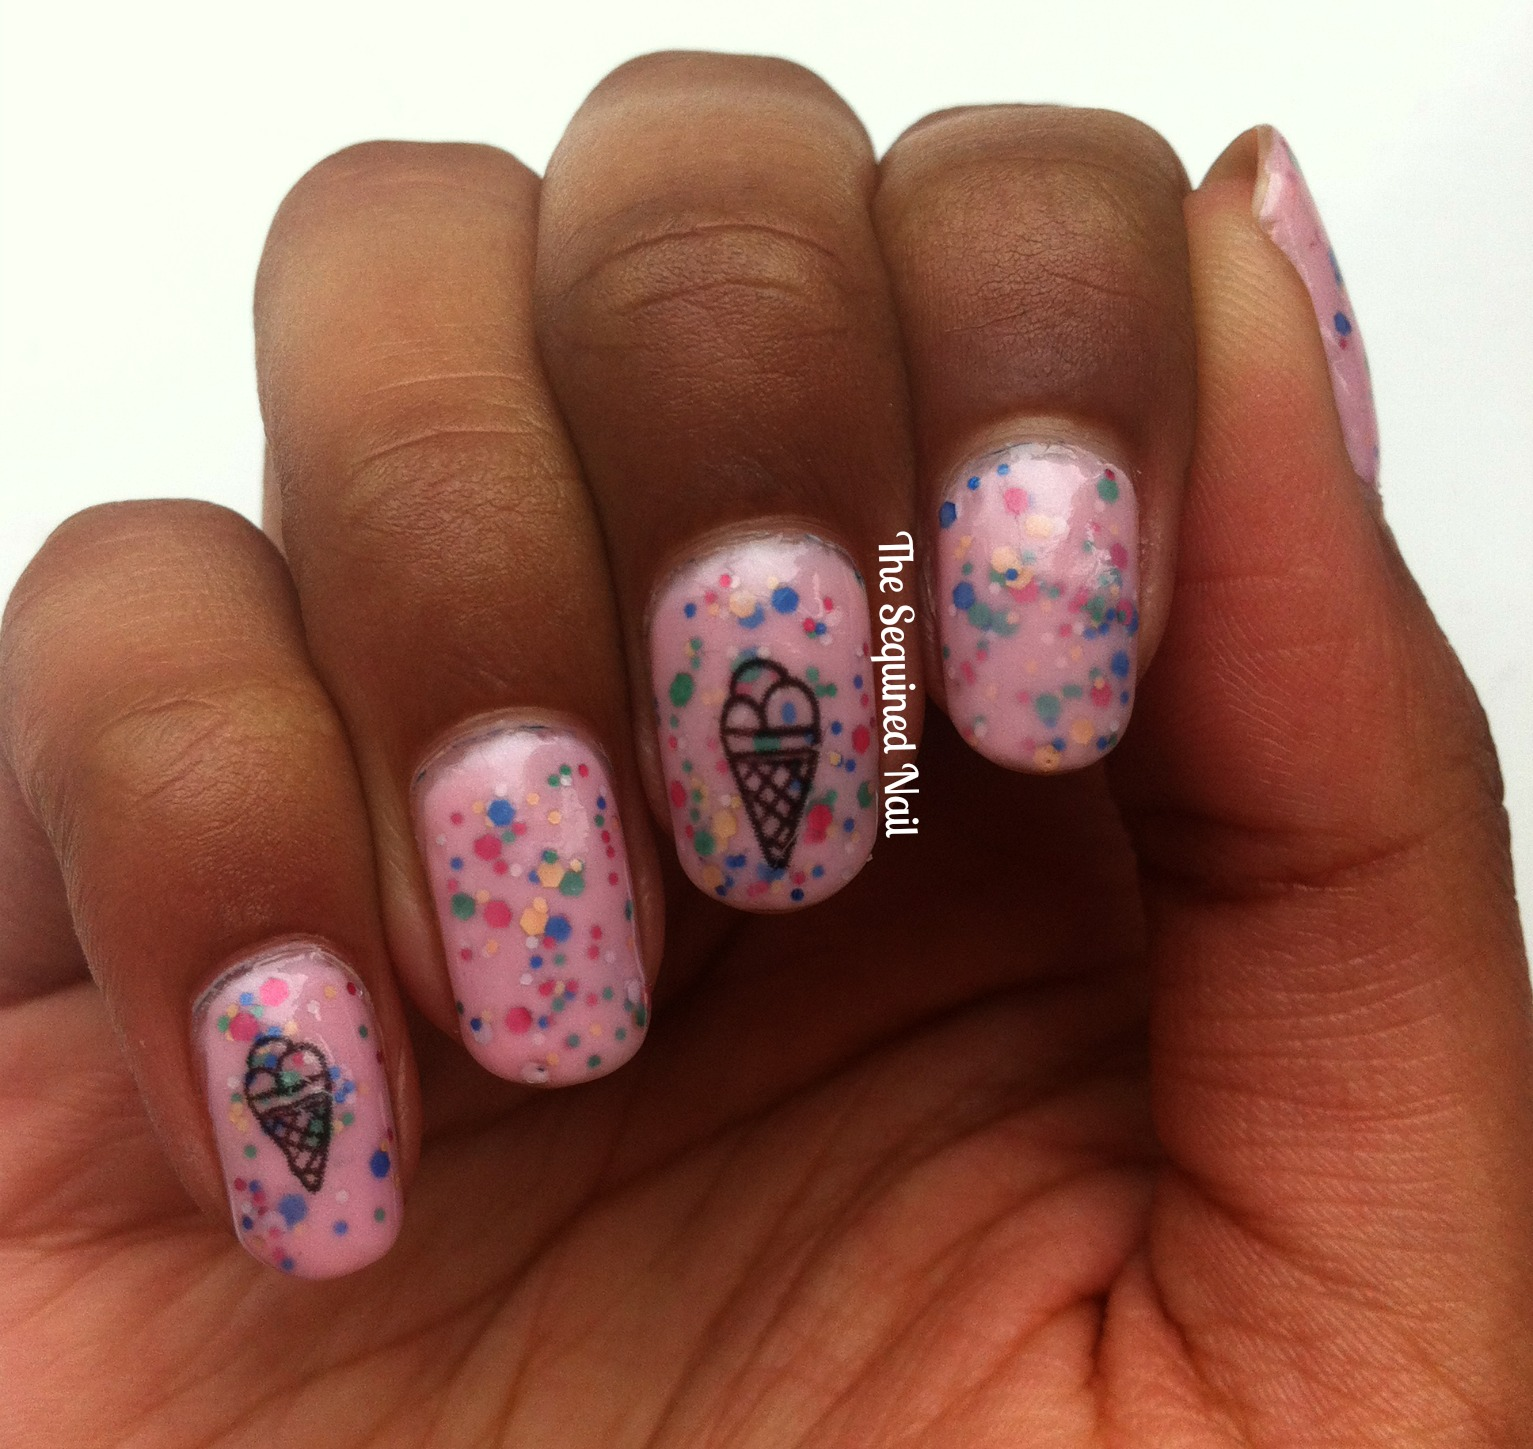 The Sequined Nail Fake Tattoos Nail Tattoos Review Ideas And Designs